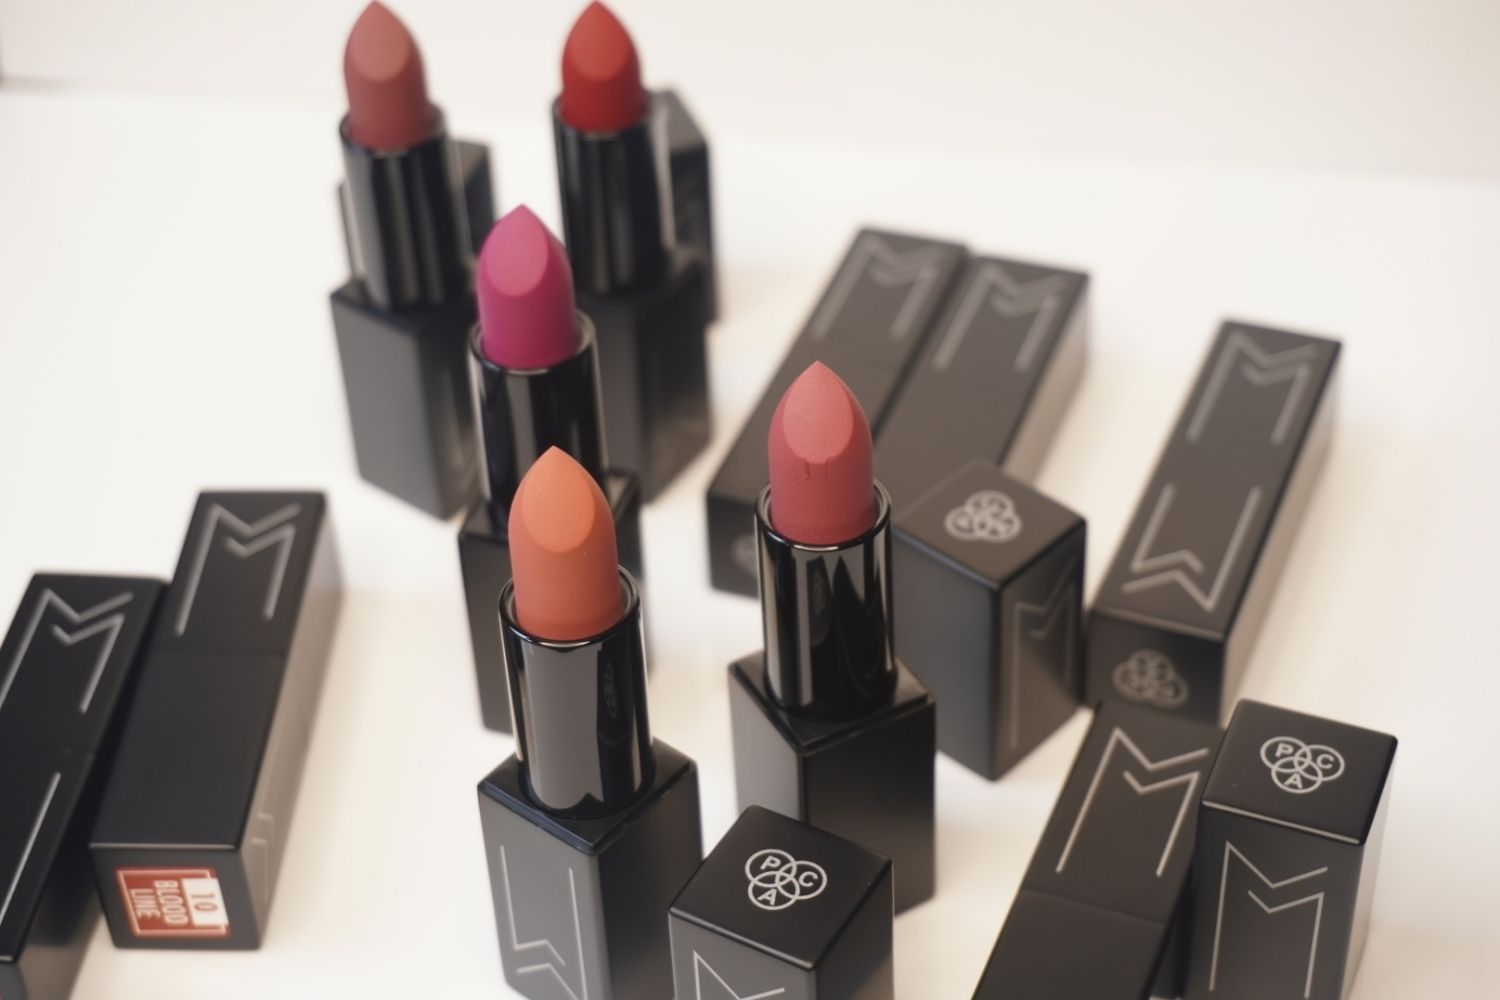 pac matte mischief lipstick review and swatches